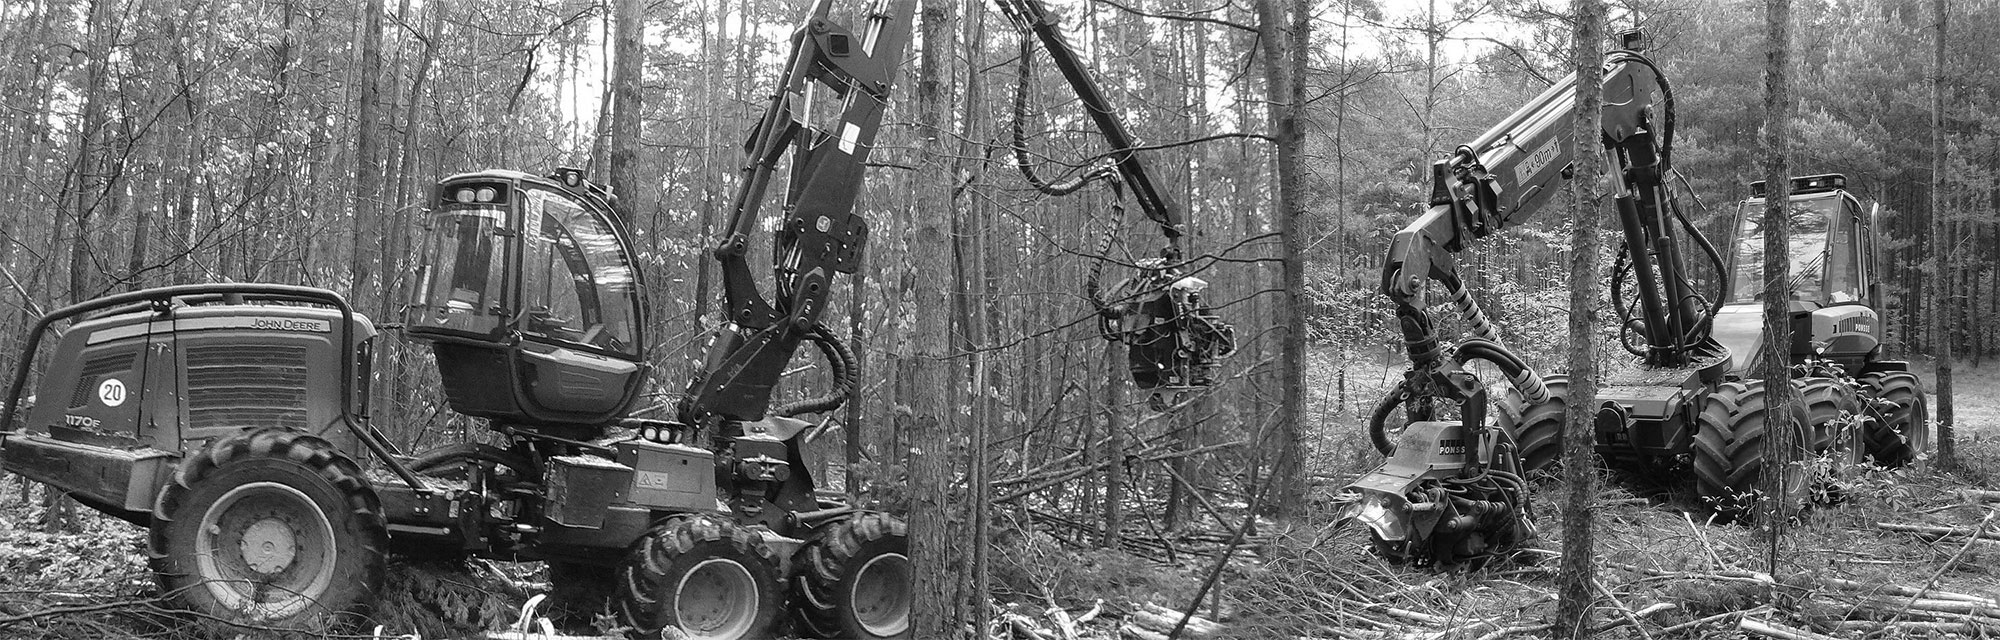 Pat's heavy Machinery - Forestry and Construction Equipment